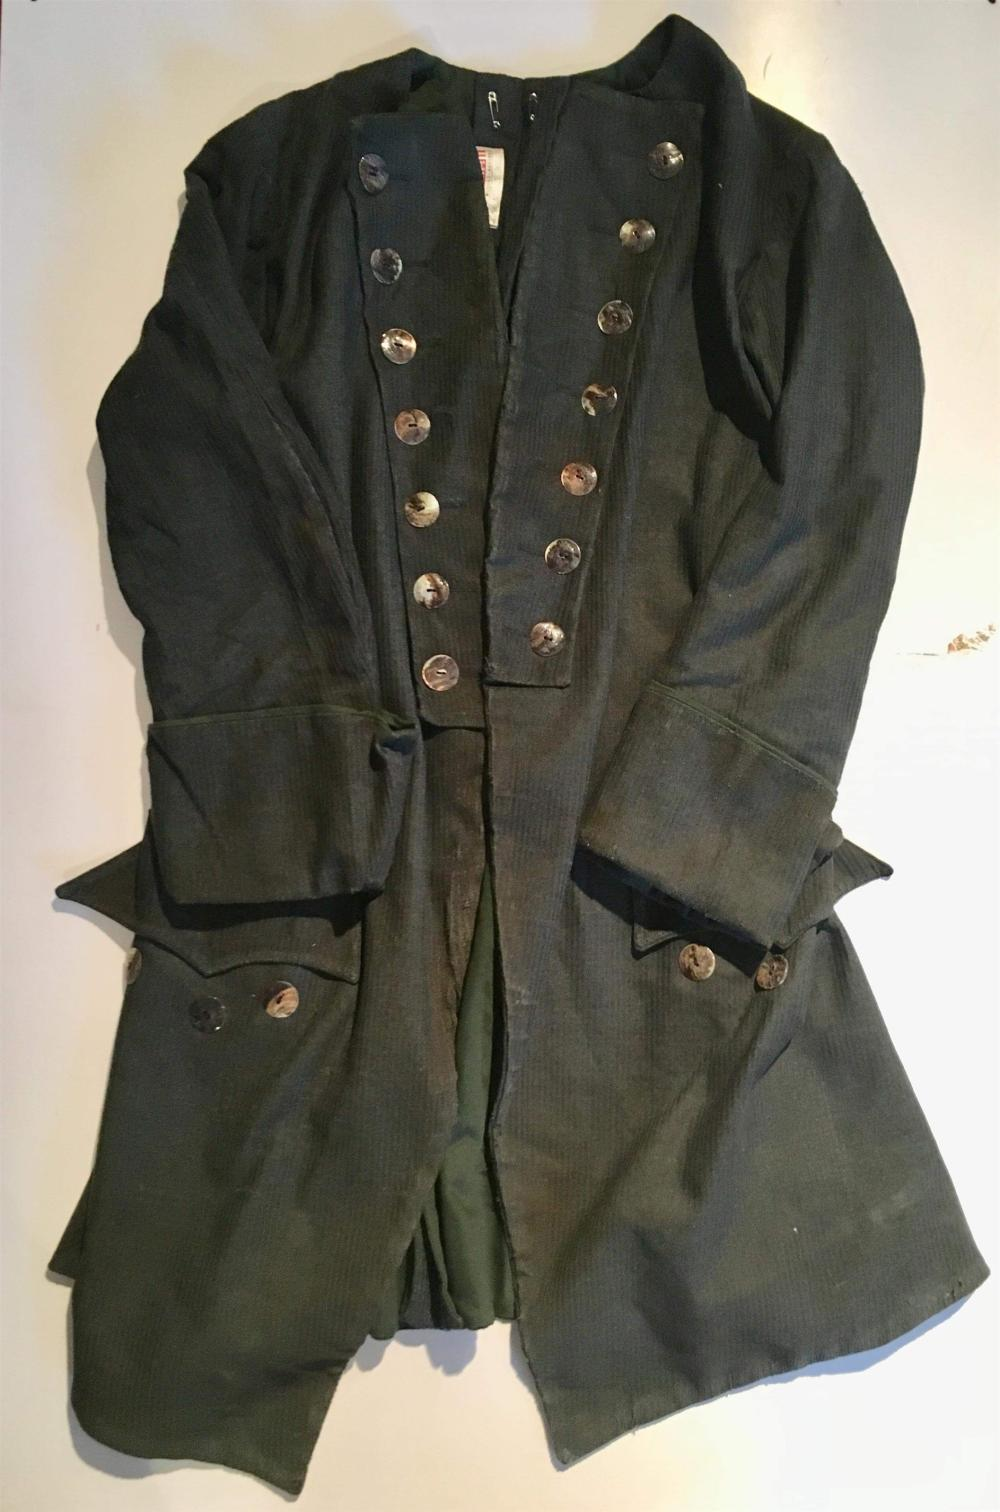 Pirates of the Caribbean: On Stranger Tides (2011) - Pirate Jacket - Lot D